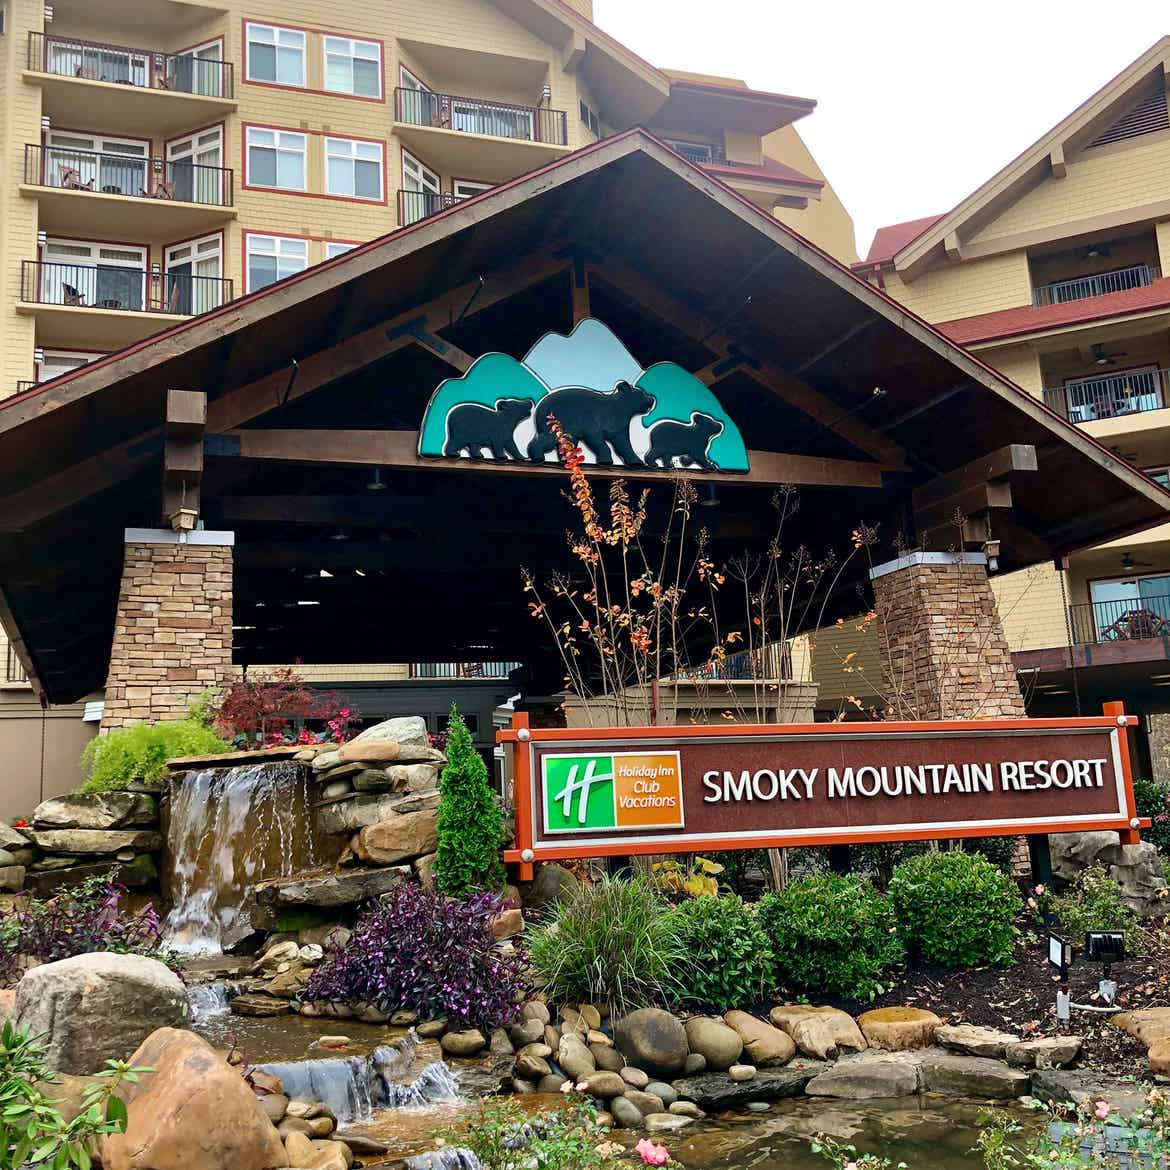 The exterior of our Smokey Moutain Resort located in Gatlinburg, Tennesee.